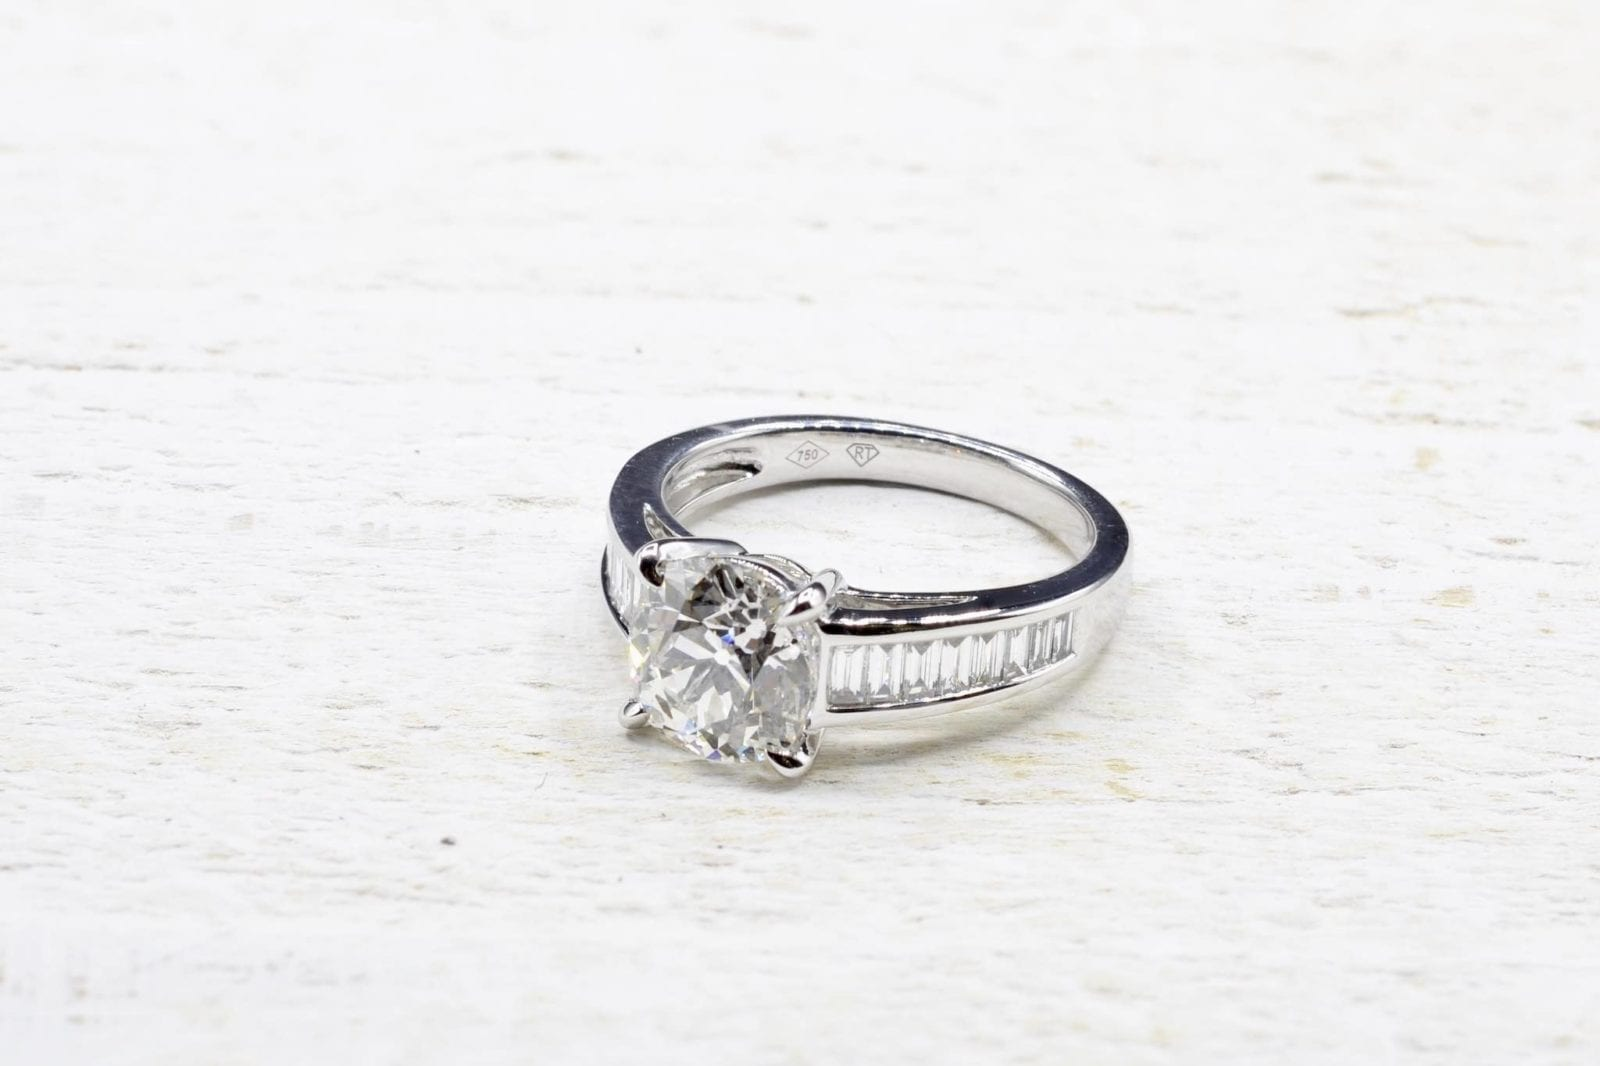 Solitaire diamond ring in 18k white gold